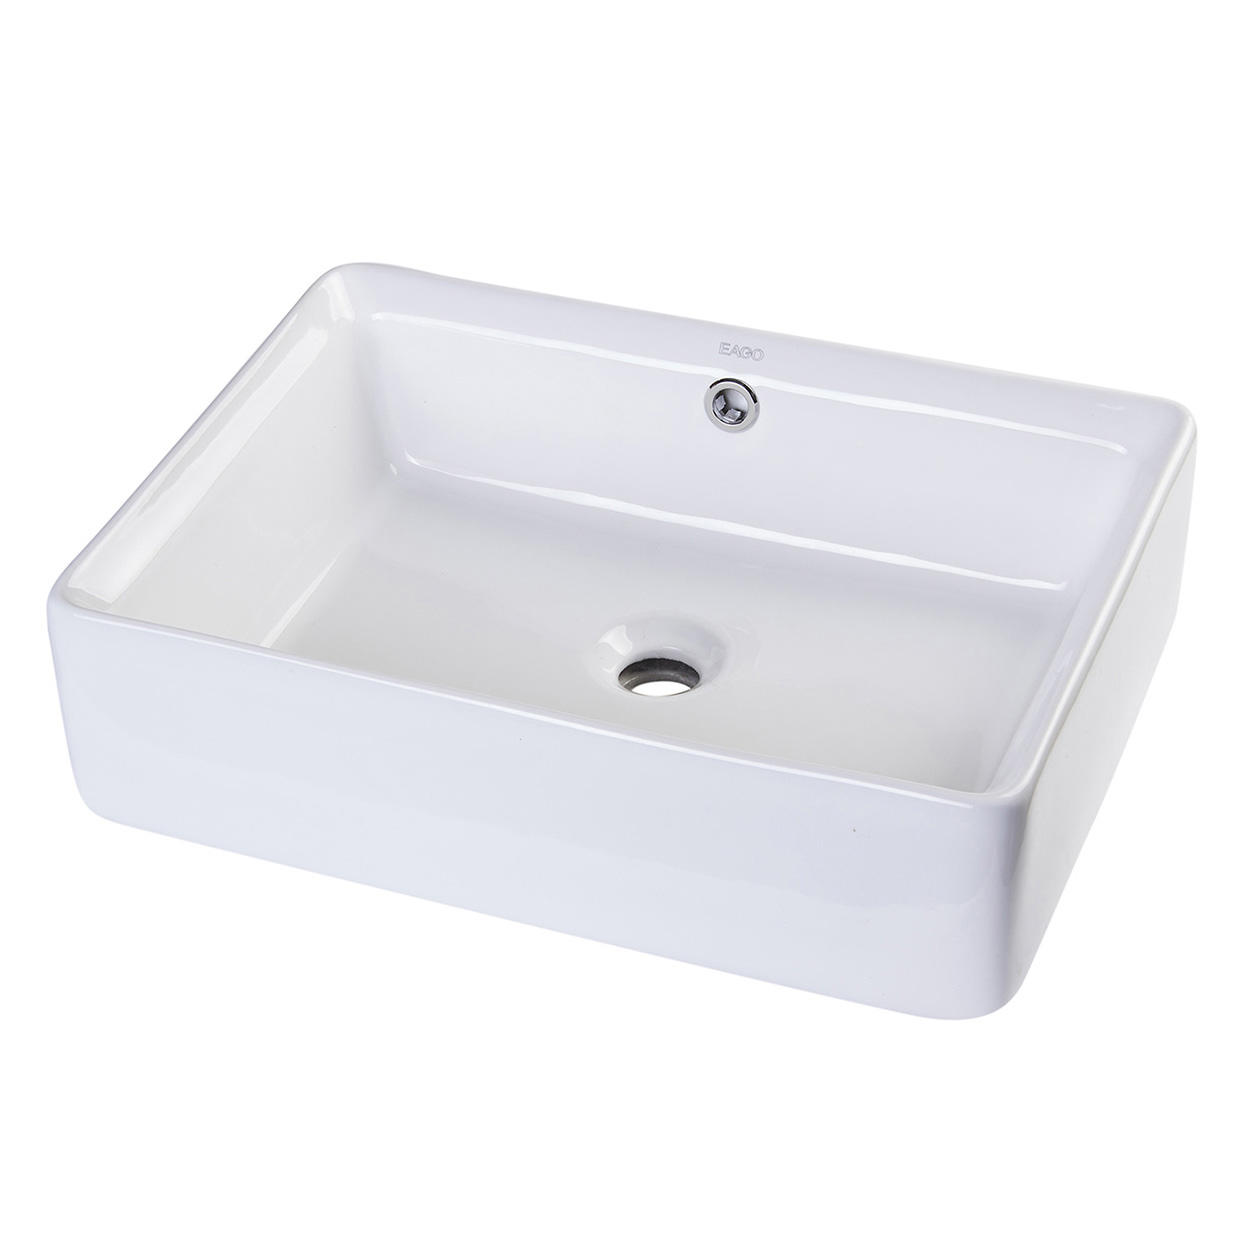 bathroom sinks top mount bath4all eago ba131 20 quot rectangular ceramic above mount 16646